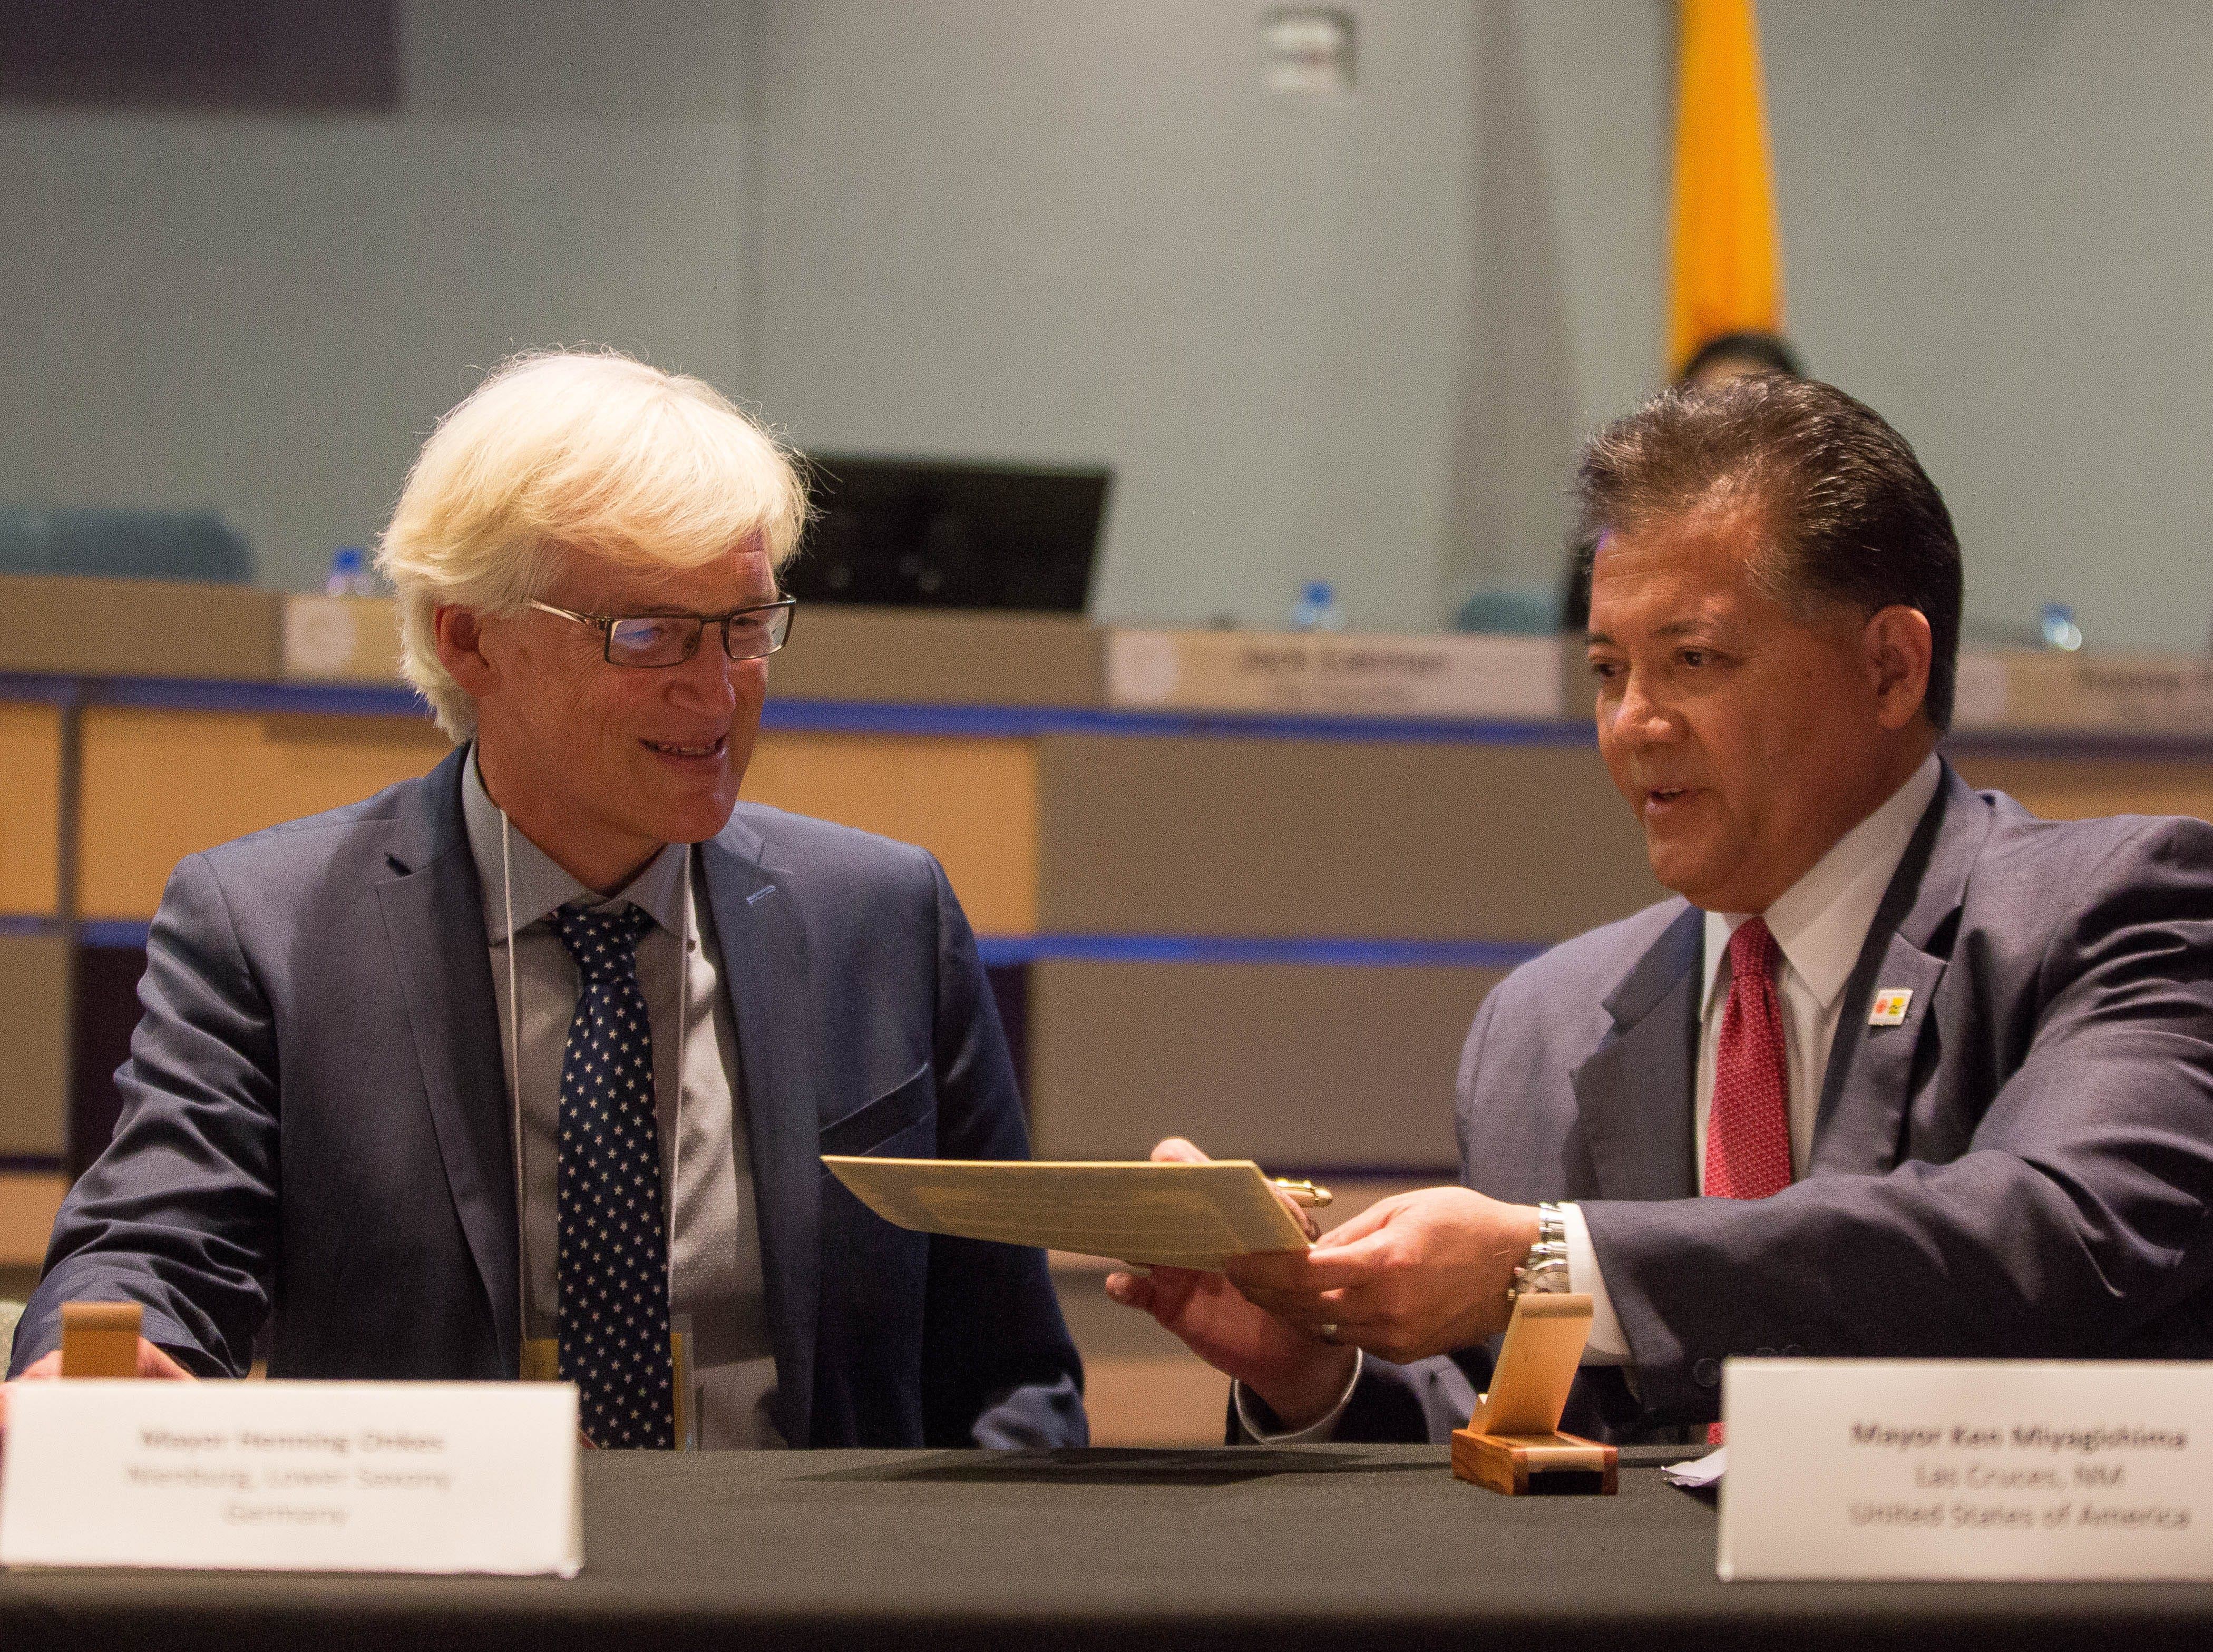 Ken Miyagishima, mayor of Las Cruces, hands signed documents to Henning Onkes, the mayor of Nienburg, Germany.  The city of Las Cruces and representatives of Las Cruces' sister city Nienburg  Germany re affirmed the sister cities status, Monday, October 1, 2018, before the city council meeting at the Las Cruces City Council Chambers.